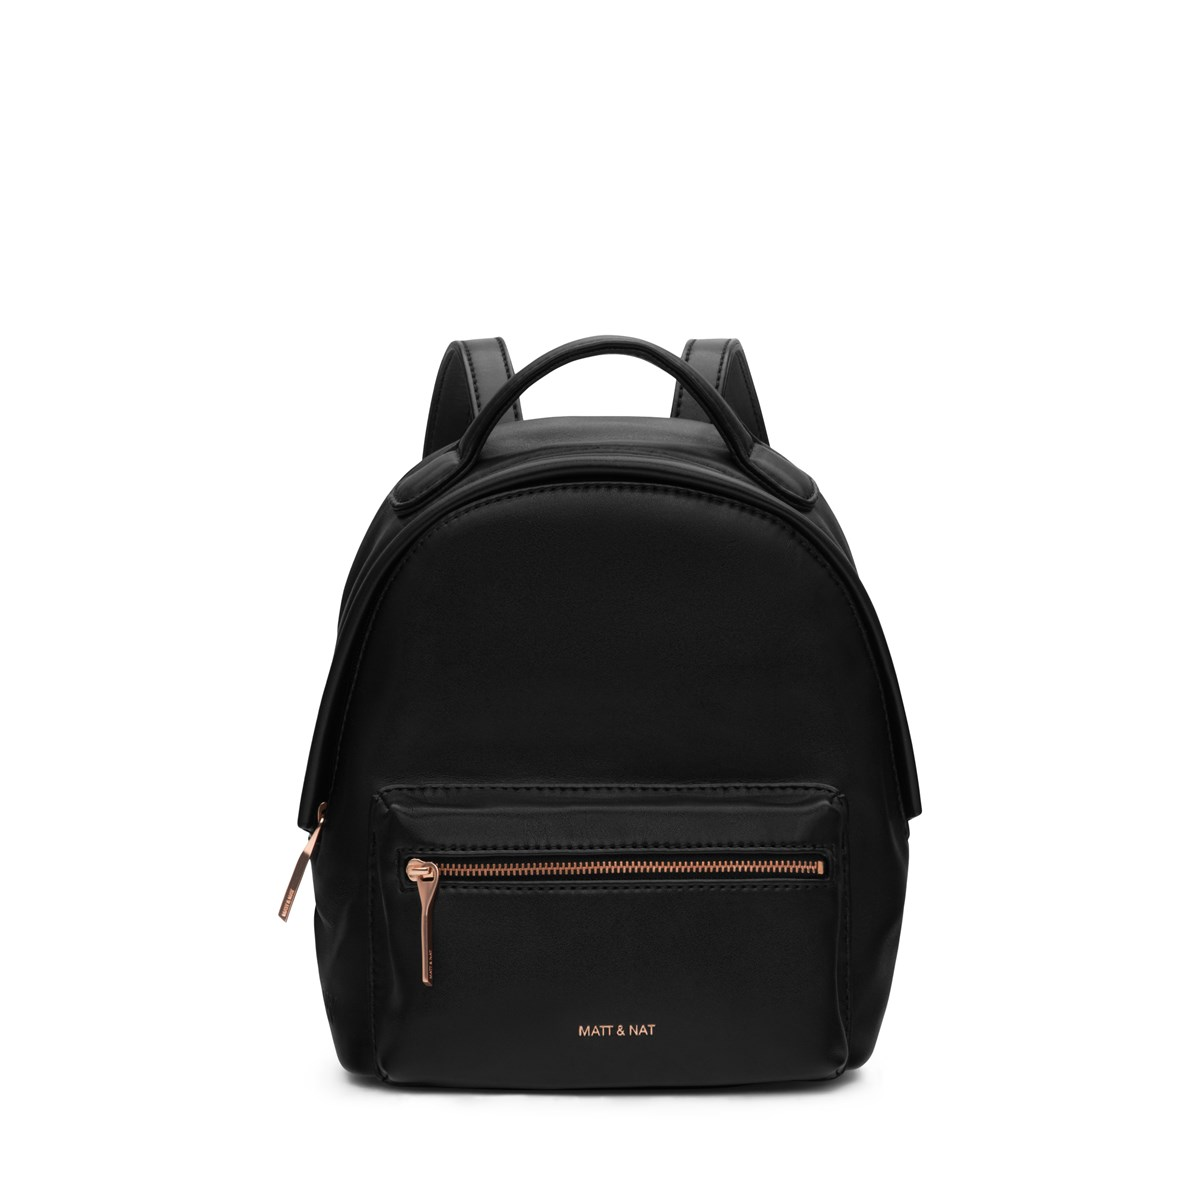 Bali Mini Vegan Backpack in Black